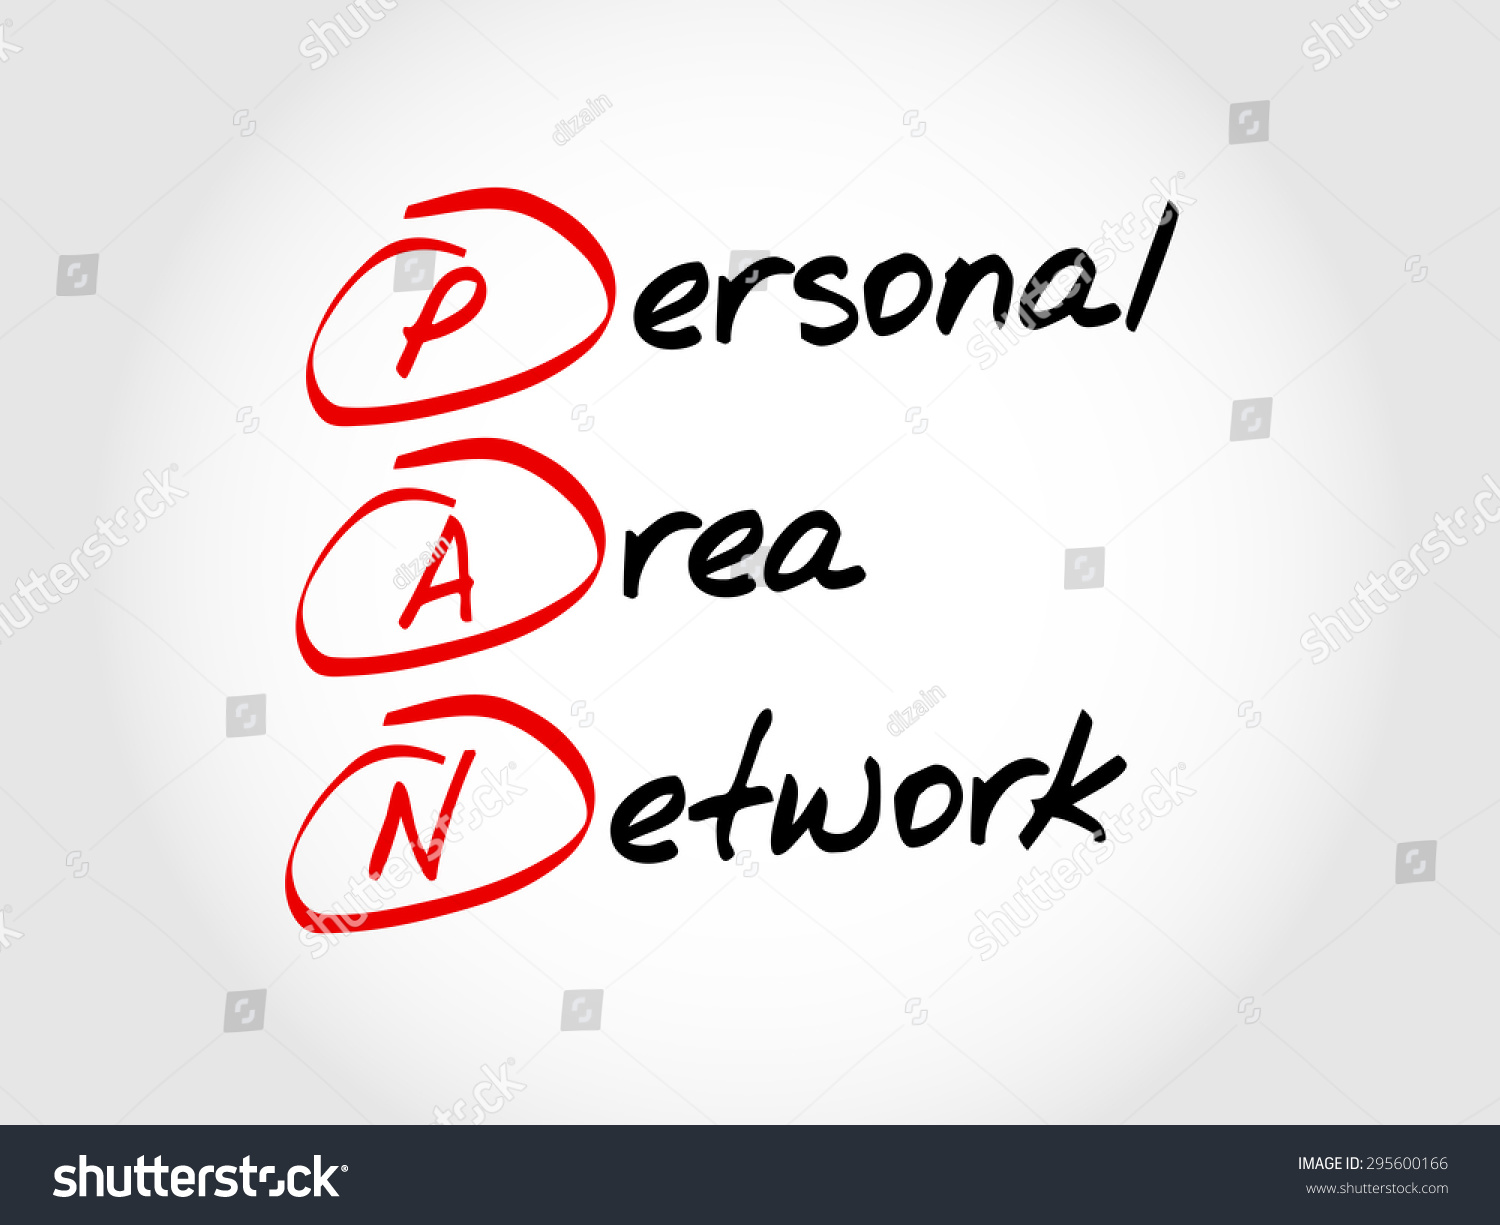 pan personal area network acronym concept stock vector